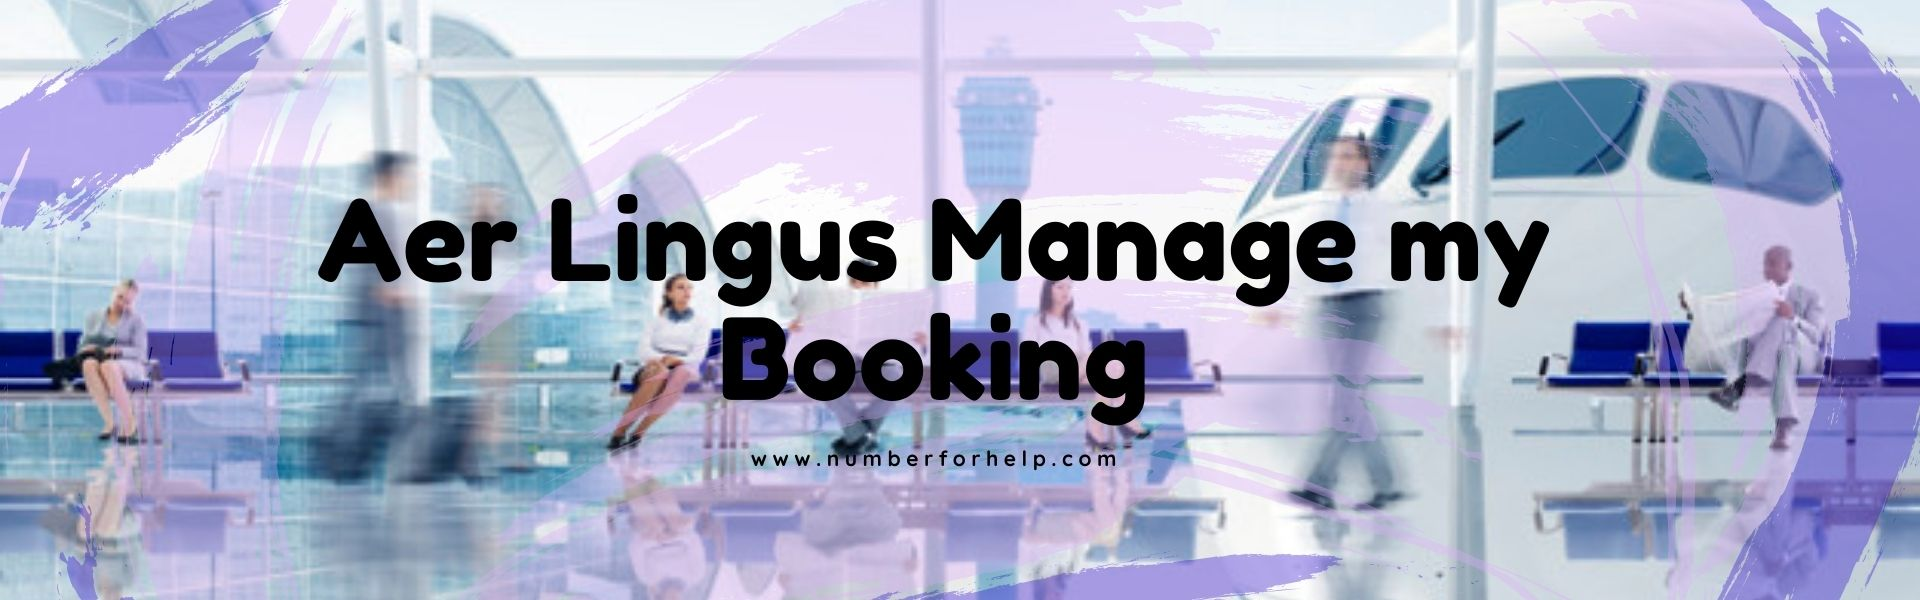 2020-10-08-10-44-02Aer Lingus Manage my Booking